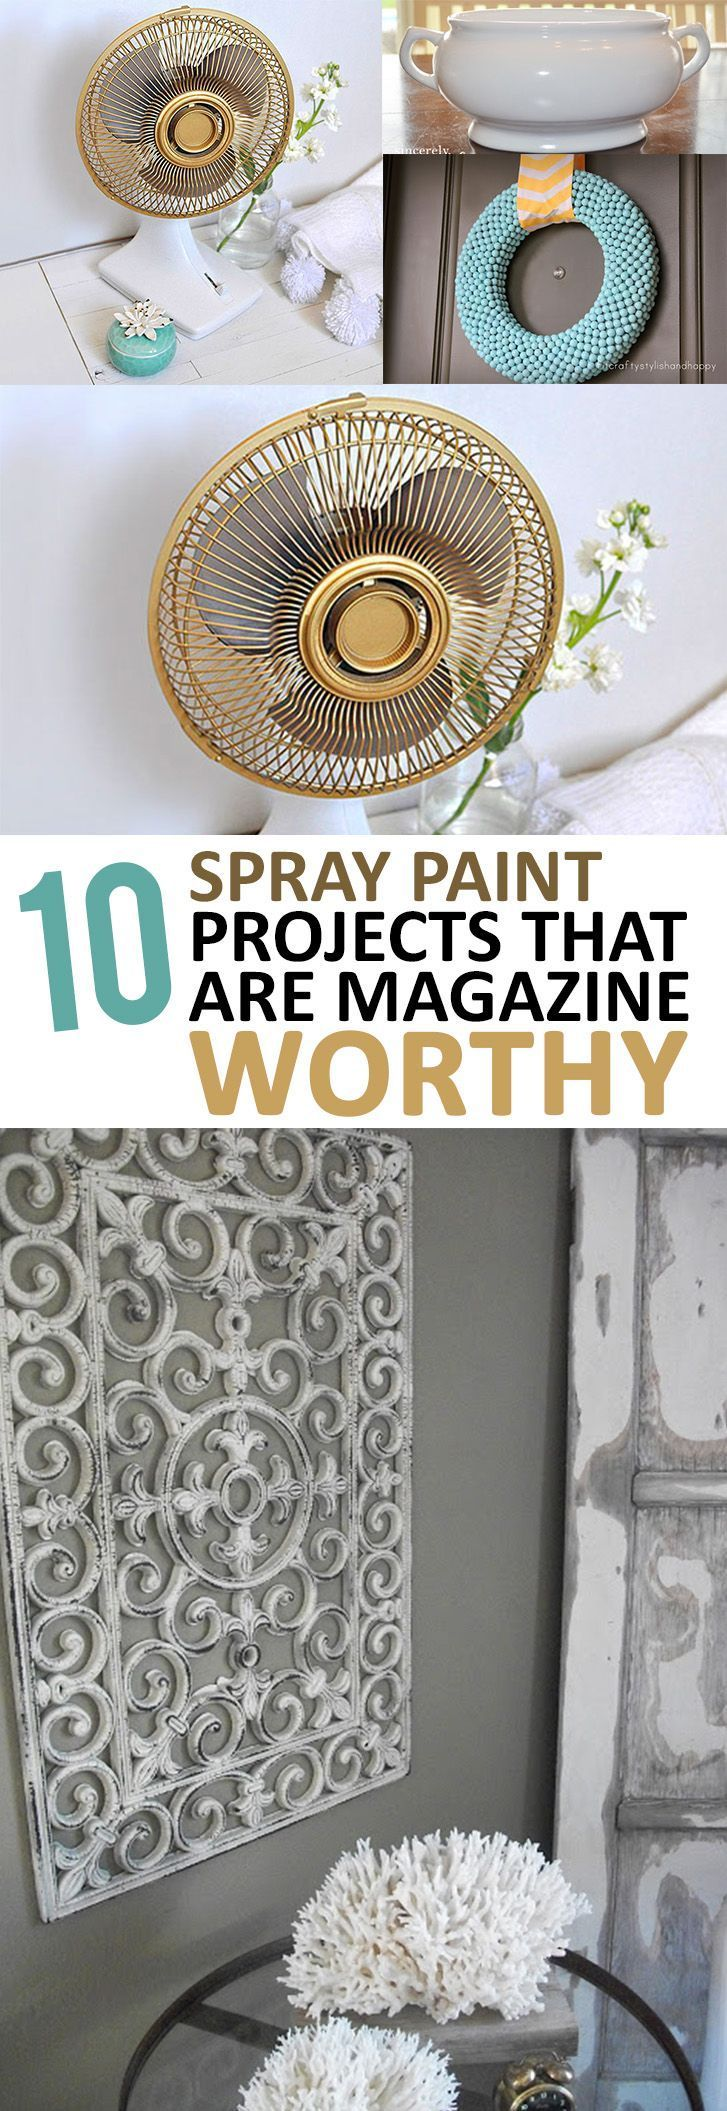 12 spray paint projects that are magazine worthy chambre enfant chambres et enfants. Black Bedroom Furniture Sets. Home Design Ideas